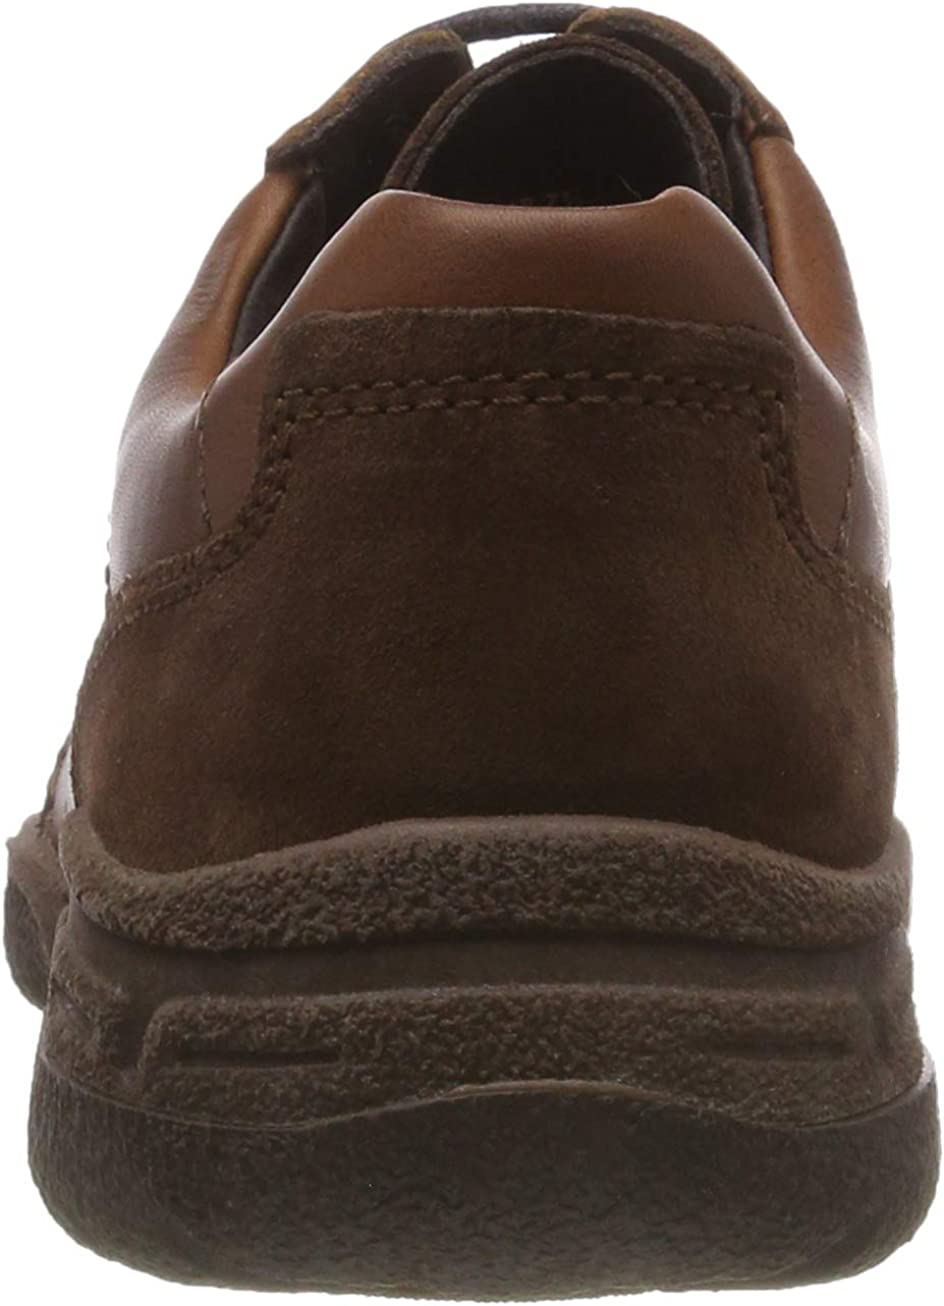 camel active Bolzano 11, Derbys Homme: : Chaussures